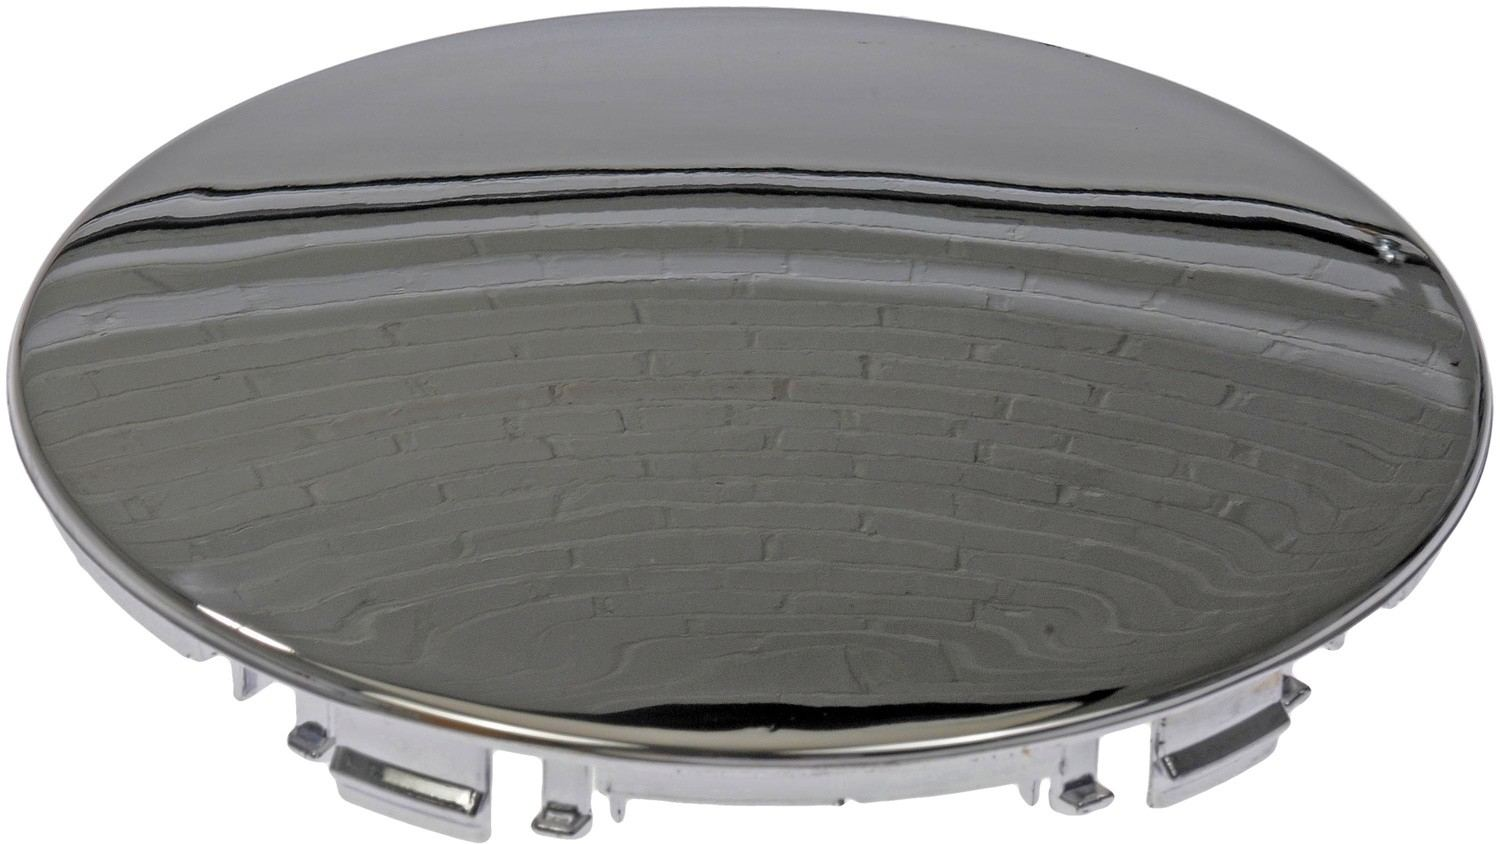 DORMAN OE SOLUTIONS - Wheel Cap - DRE 909-015